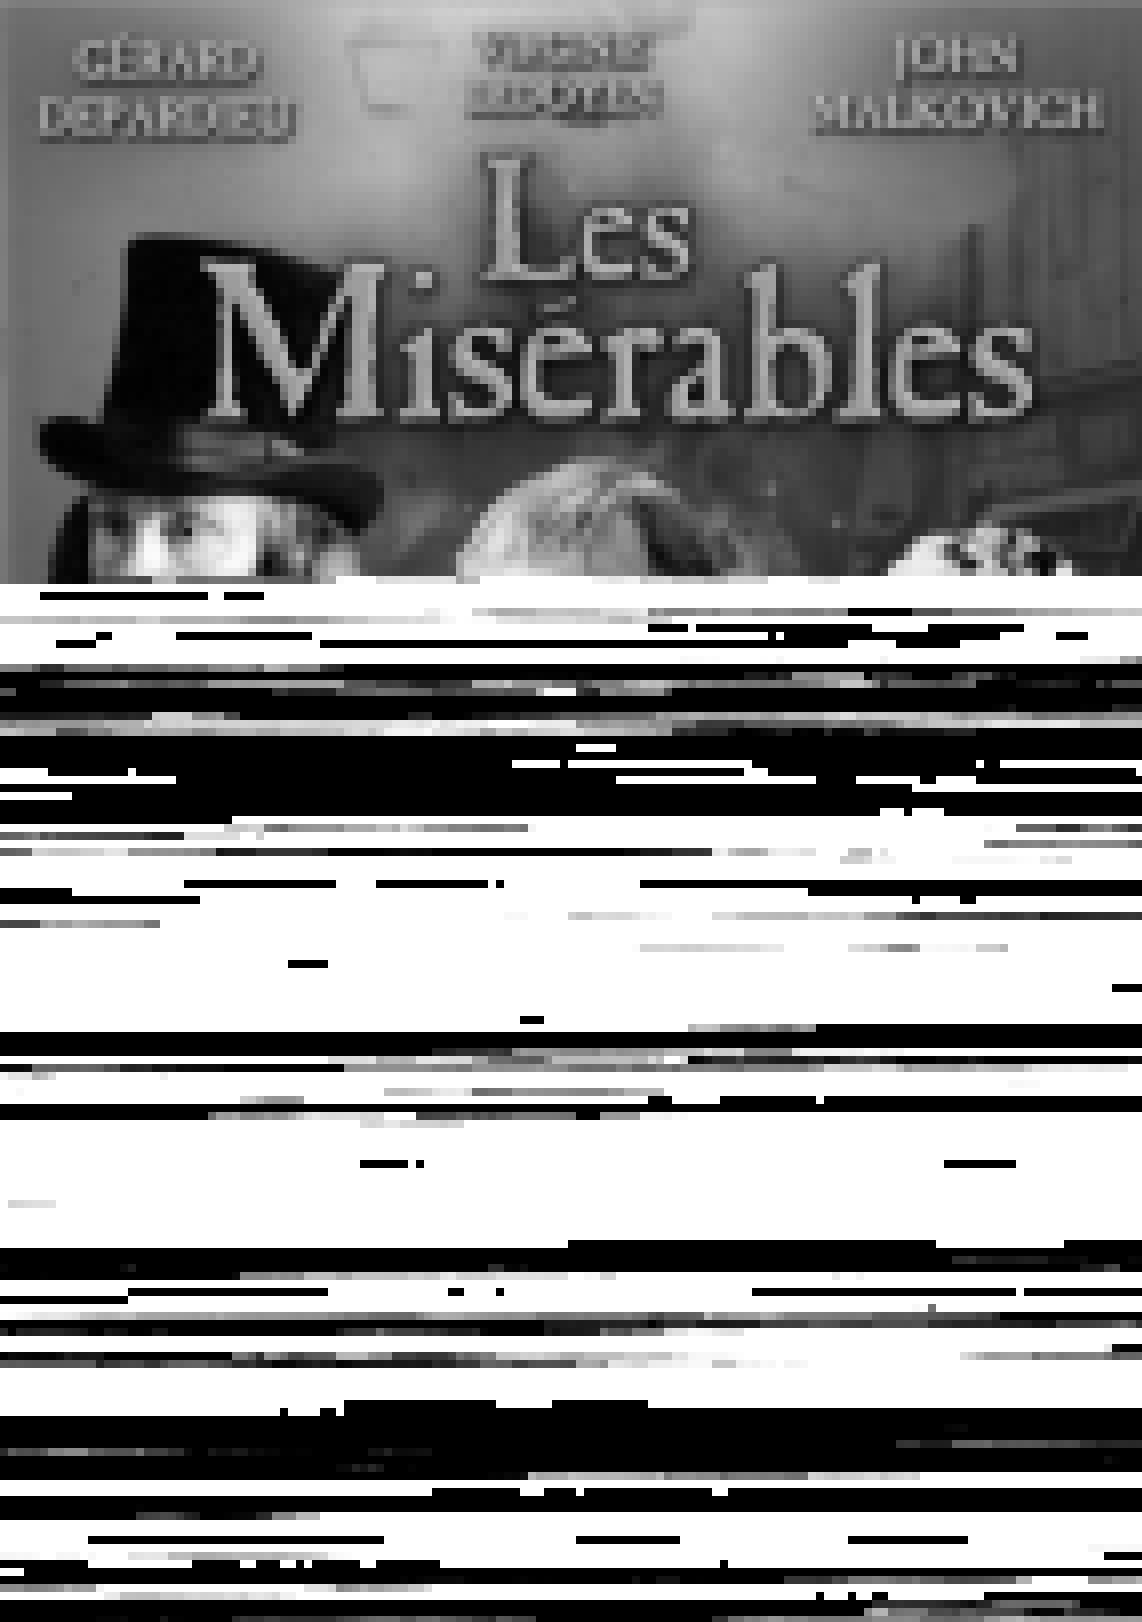 Los Miserables' />